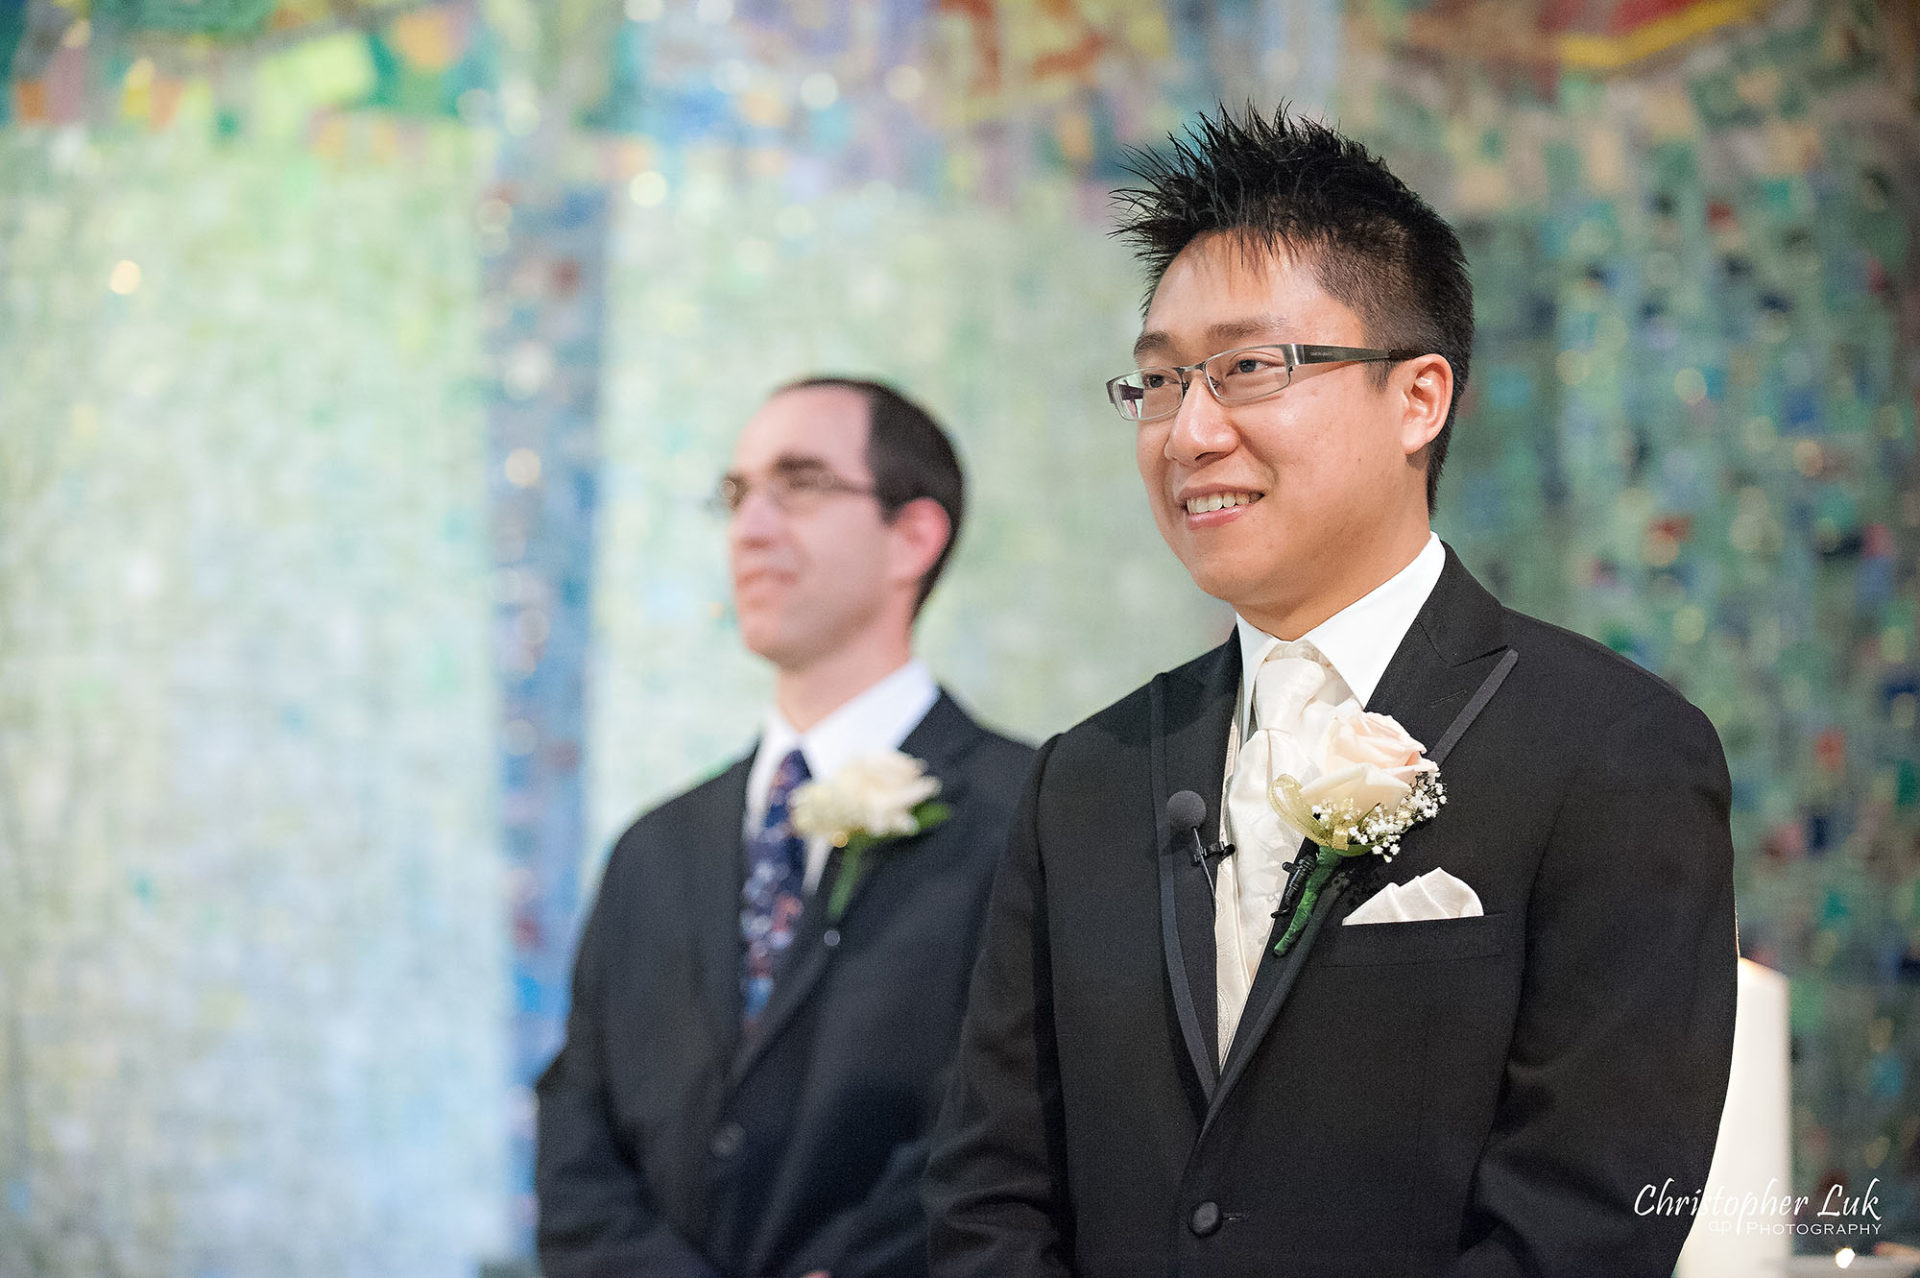 Christopher Luk Toronto Wedding Photography Tyndale Chapel Church Ceremony Venue Location Bride Groom Altar Reaction Walking Down the Aisle Processional